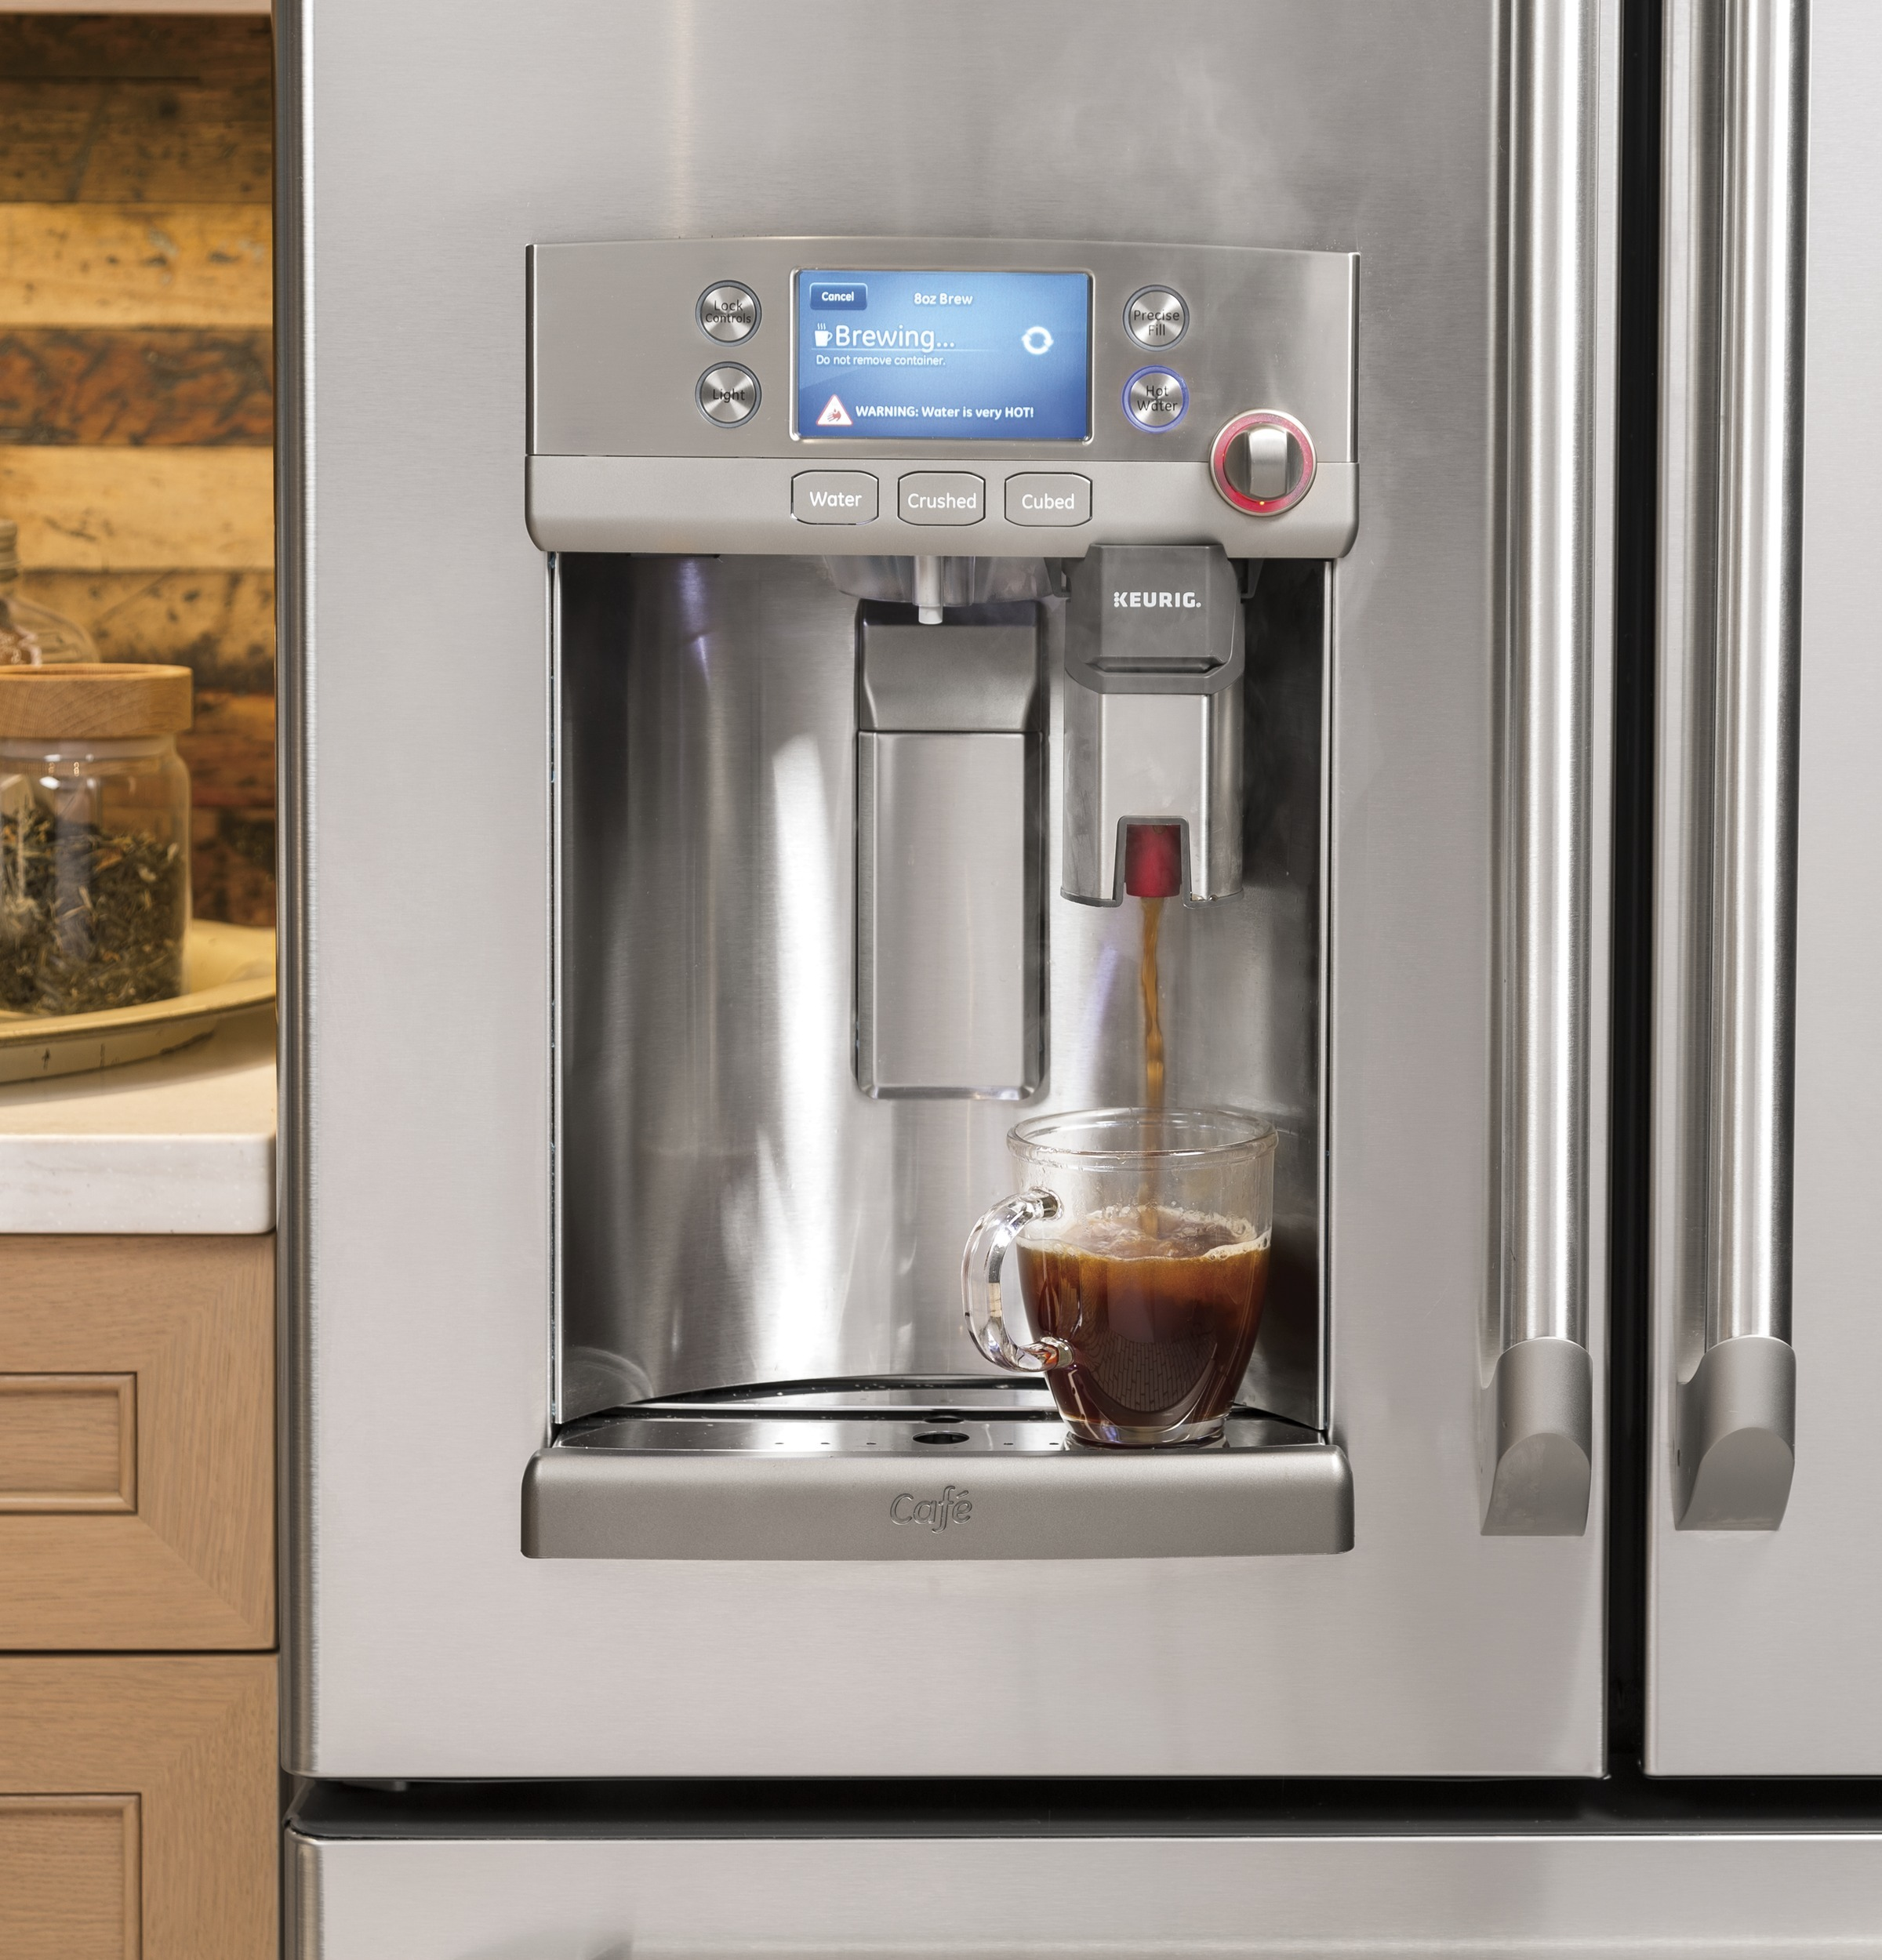 Ge Caf 233 Is A Refrigerator With A Keurig System Built In